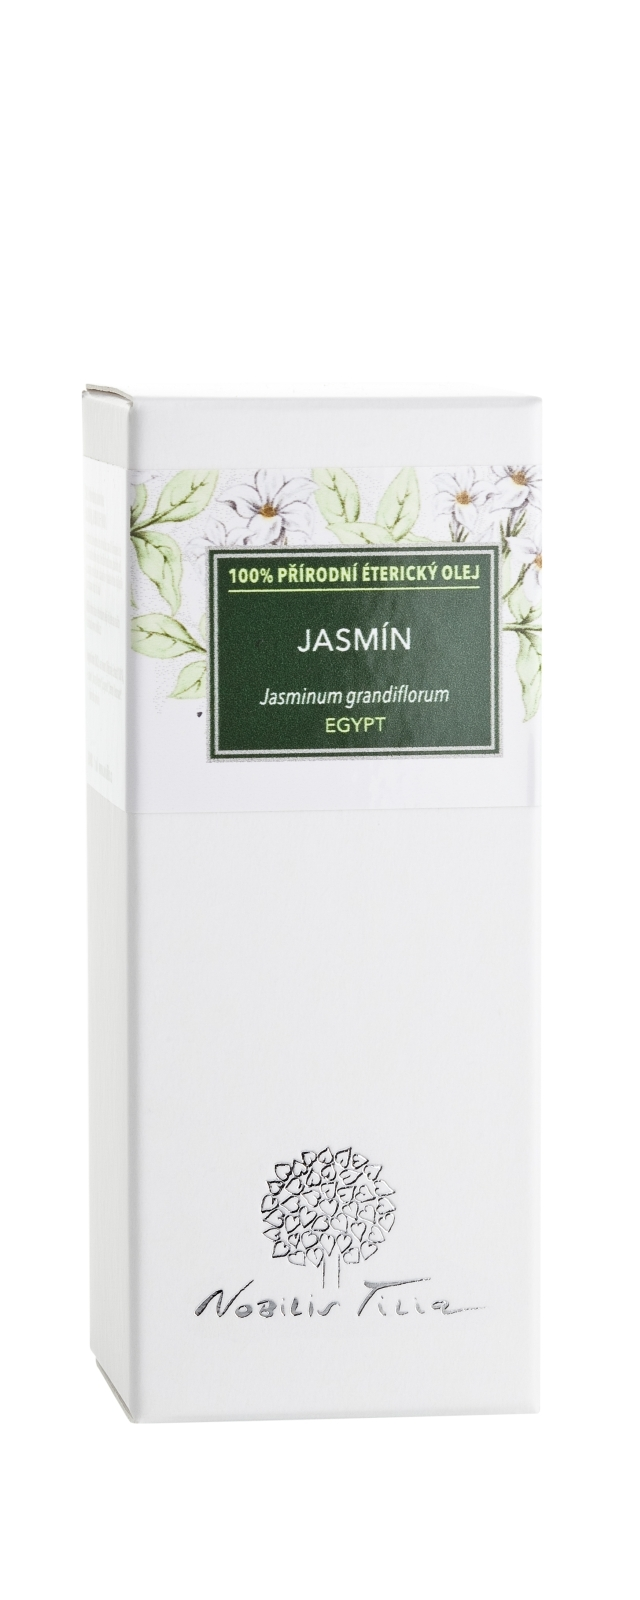 Nobilis JASMÍN ABSOLUE 100% 1ml